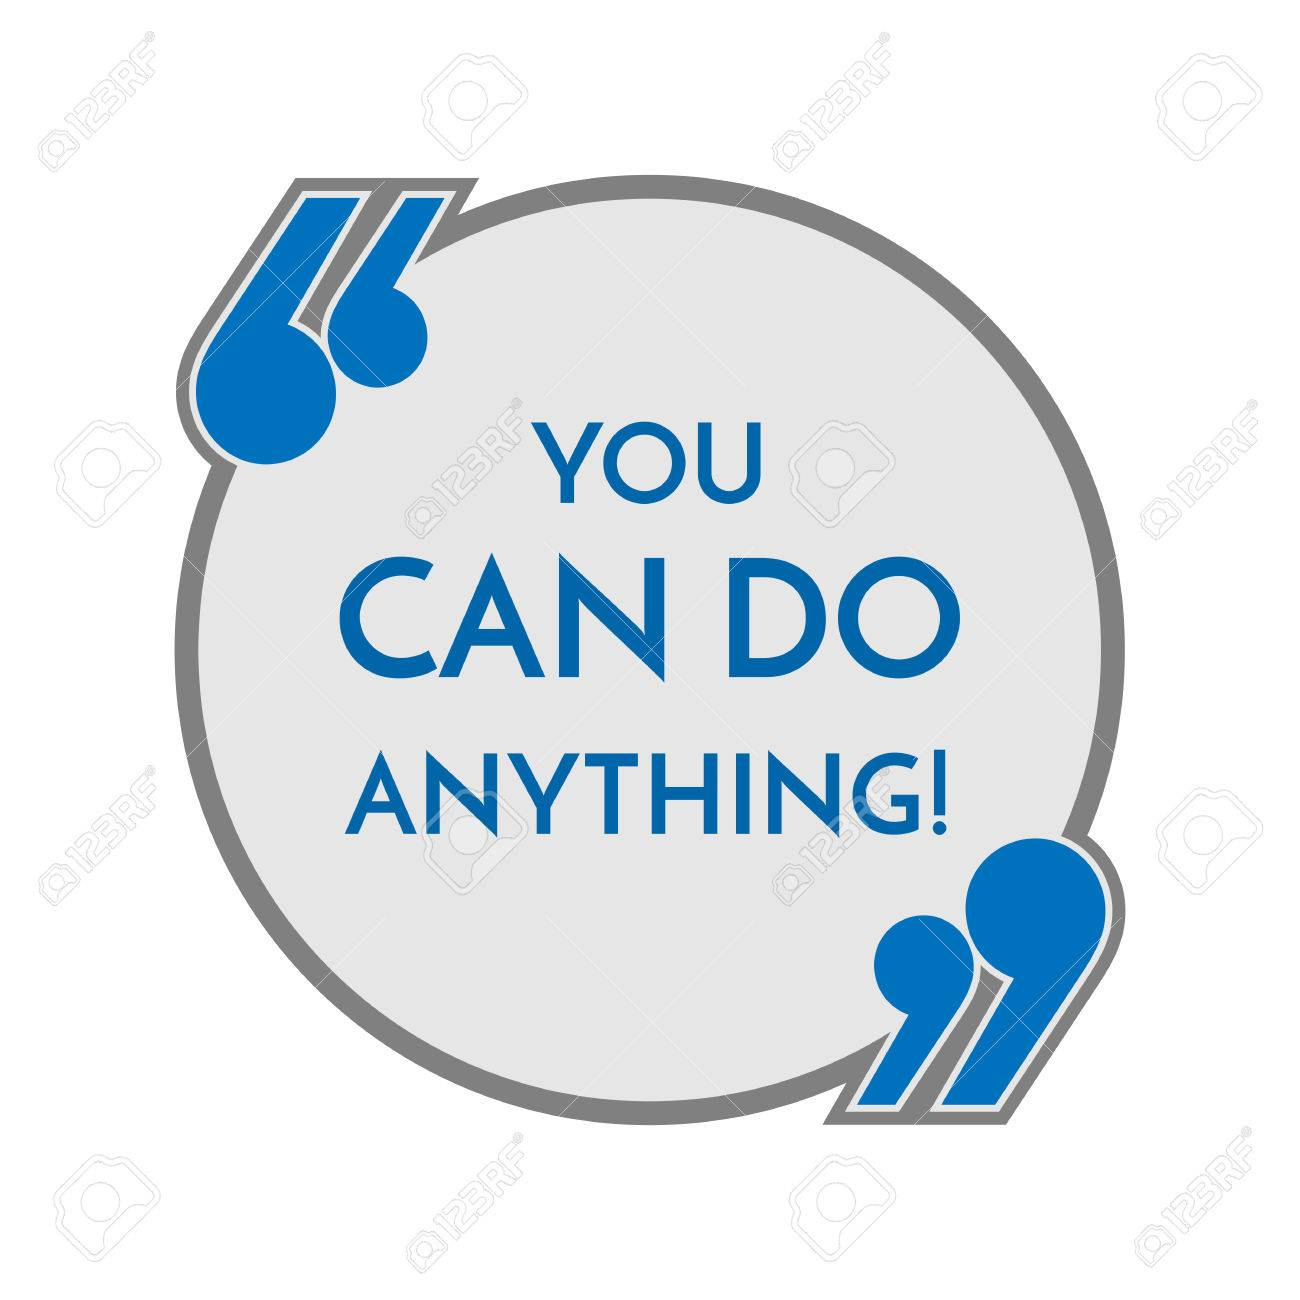 Life Motto In Round Button With Quotes You Can Do Anything Philosophy